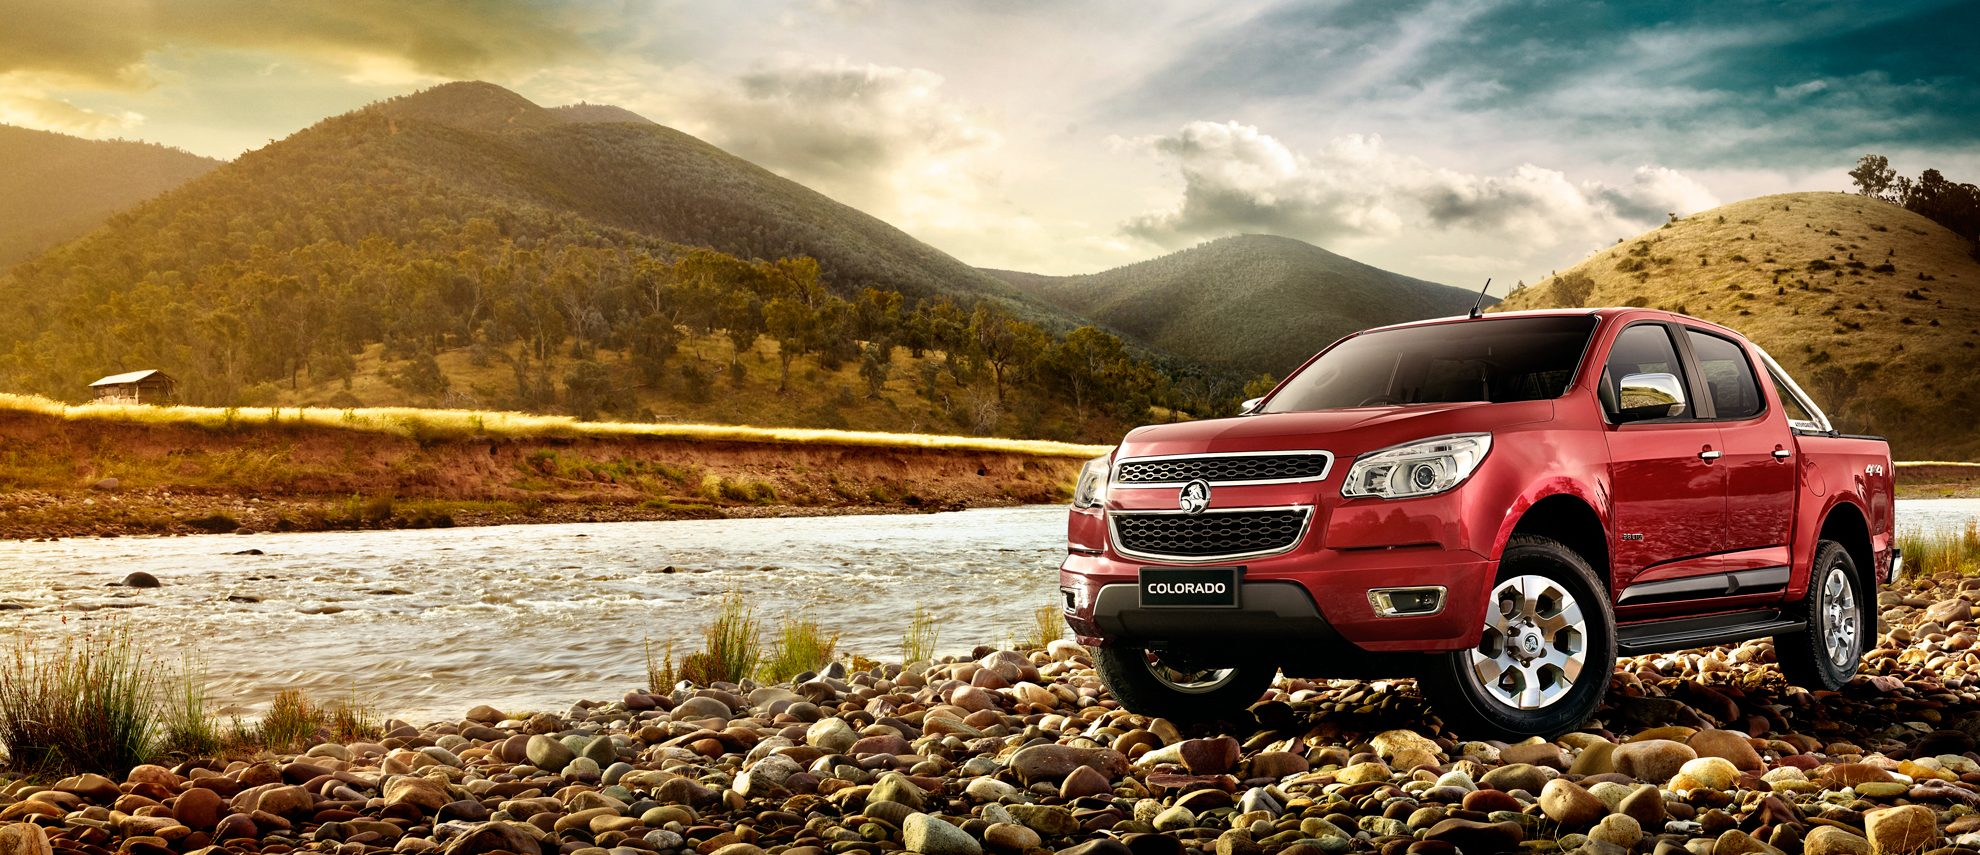 The all new Holden Colorado has arrived at our Sydney Holden dealership.